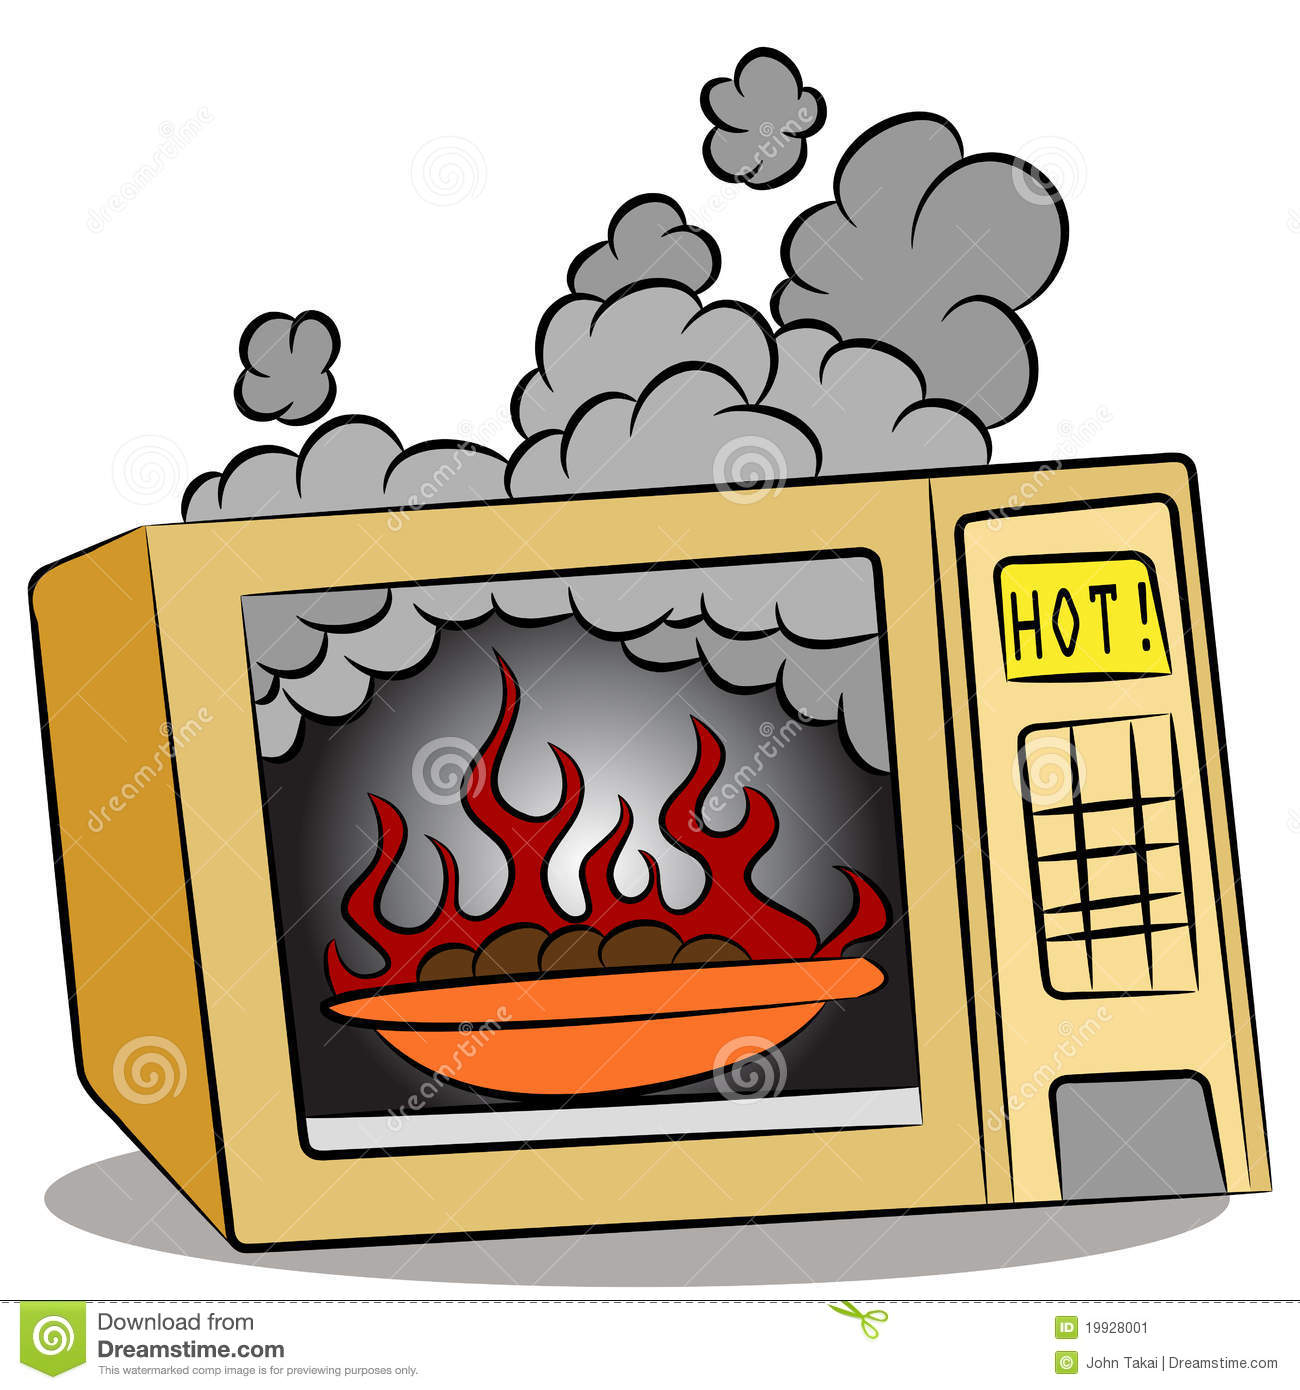 Microwave Oven Clip Art ~ Food burning in microwave oven stock vector illustration